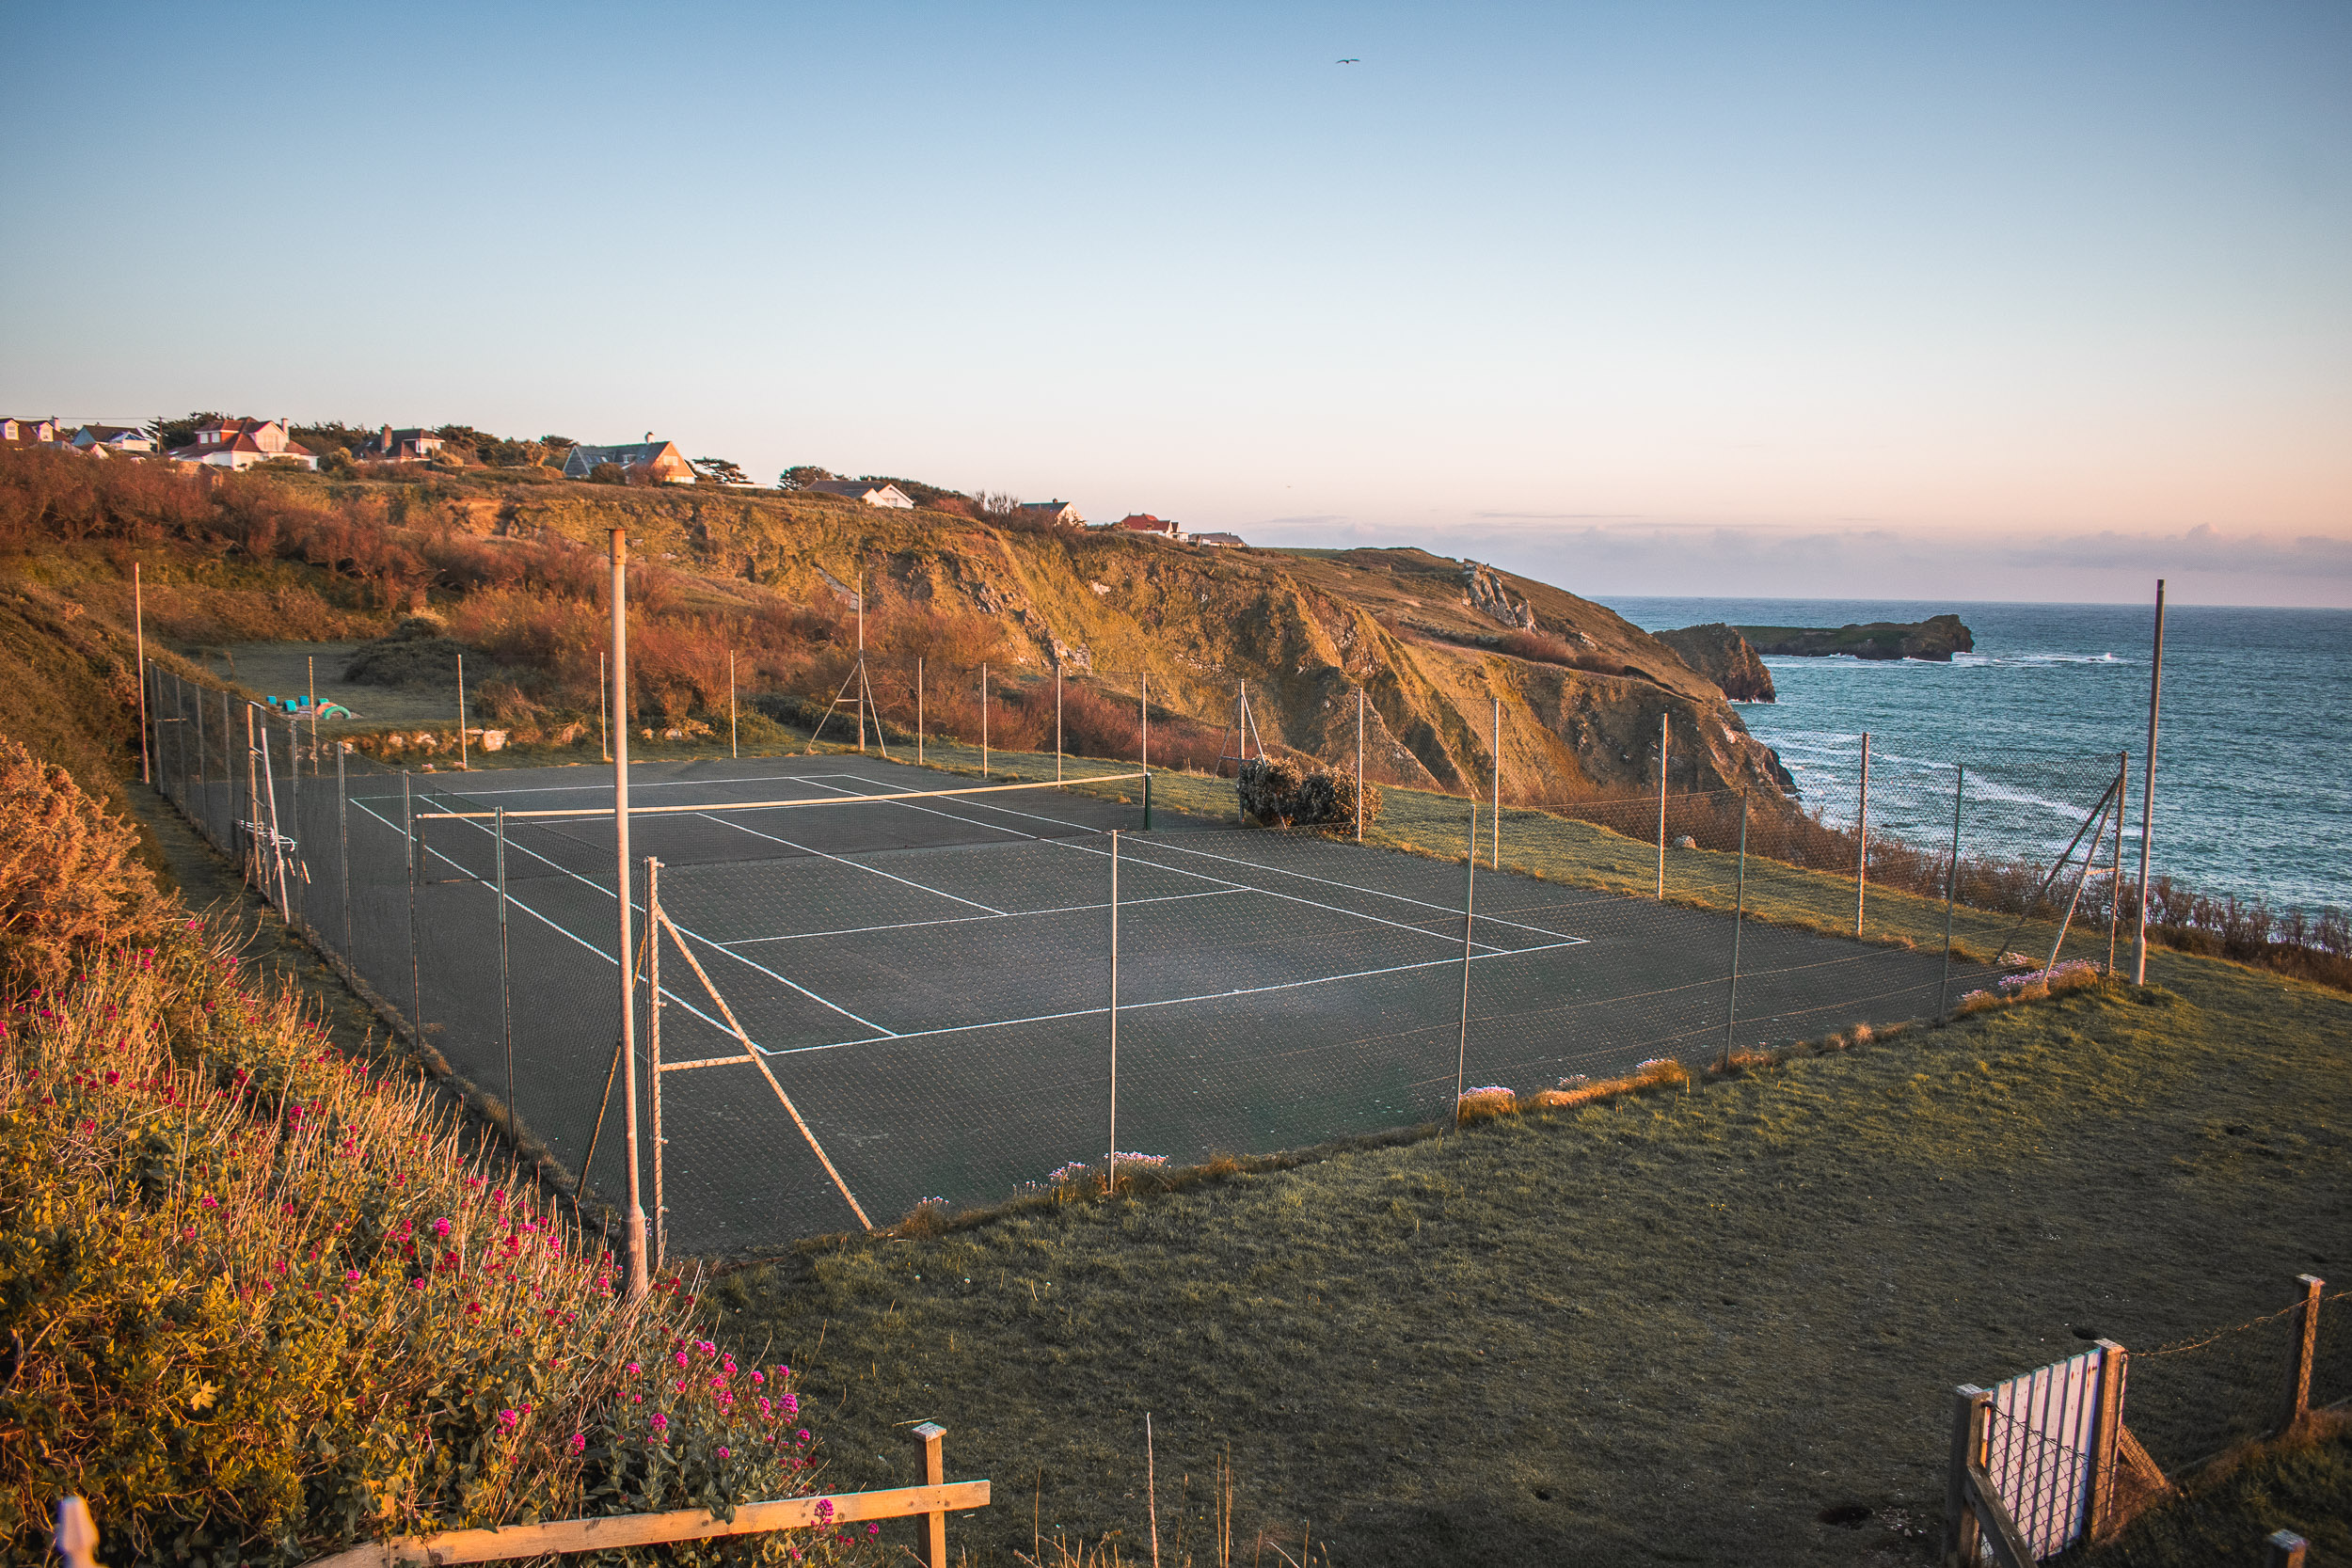 Outdoor tennis courts with a stunning sunset in the background.